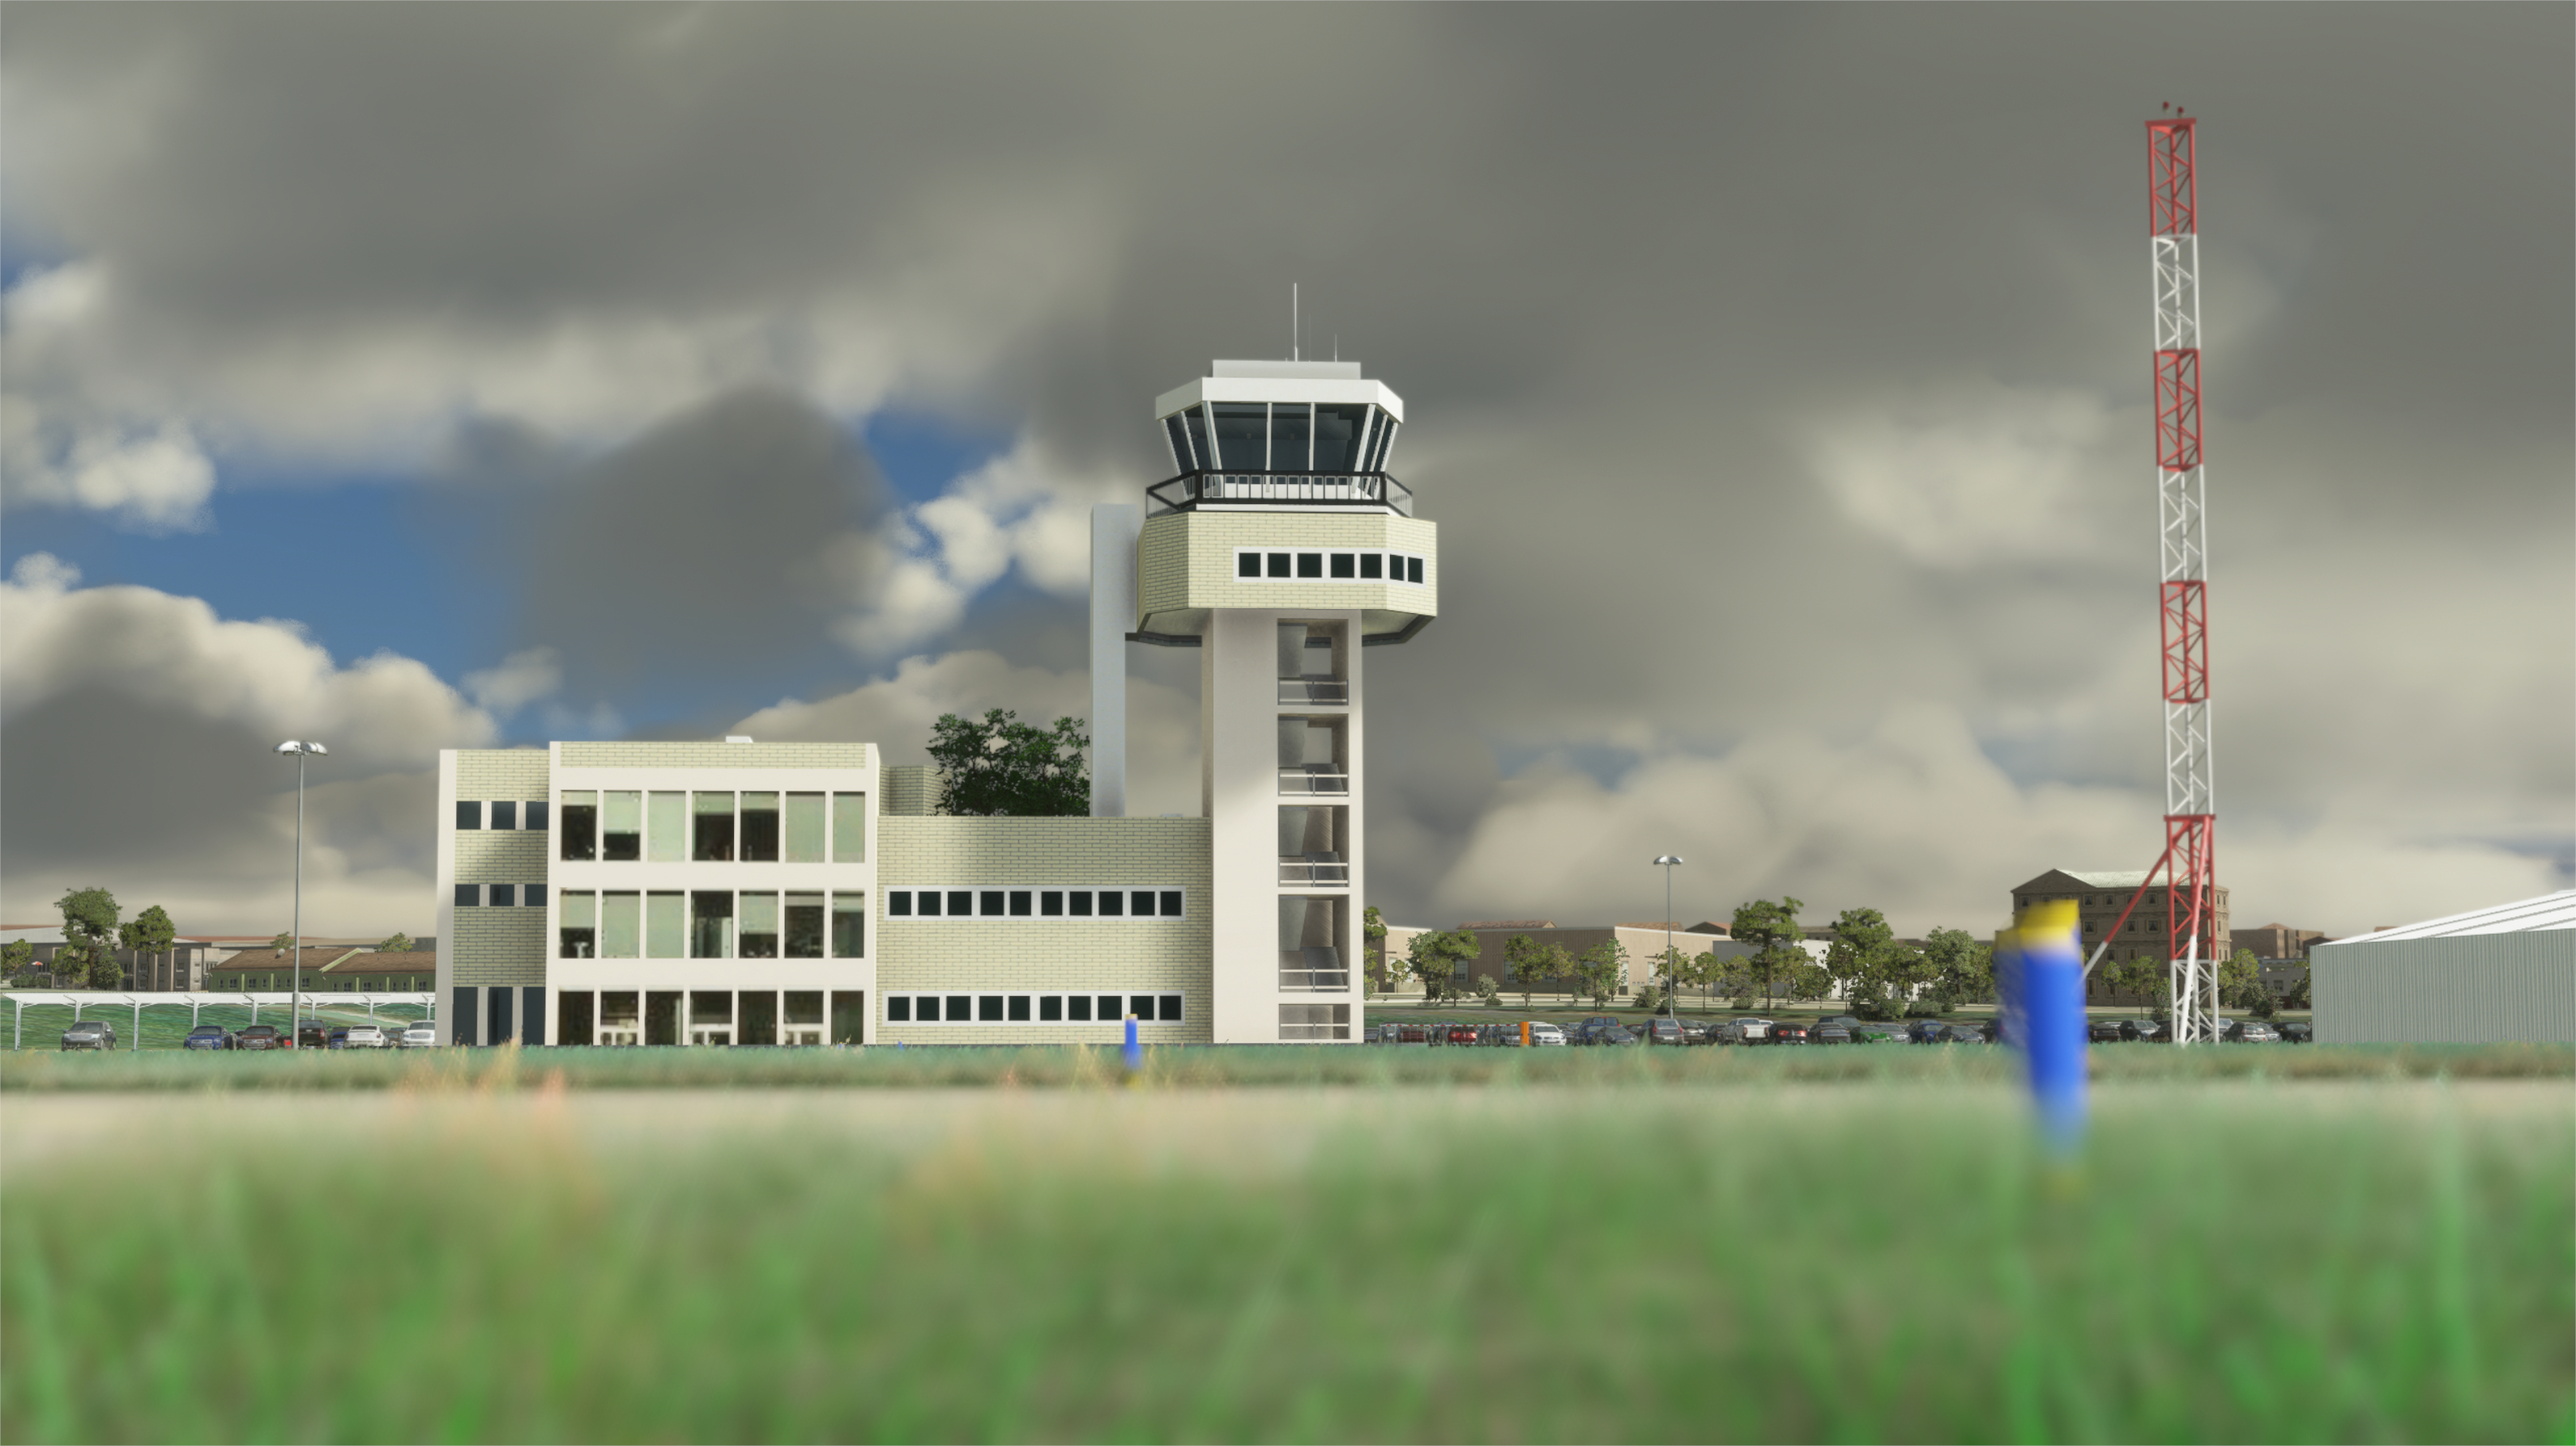 FOOTAGE DESIGNS - SABADELL AIRPORT LELL MSFS